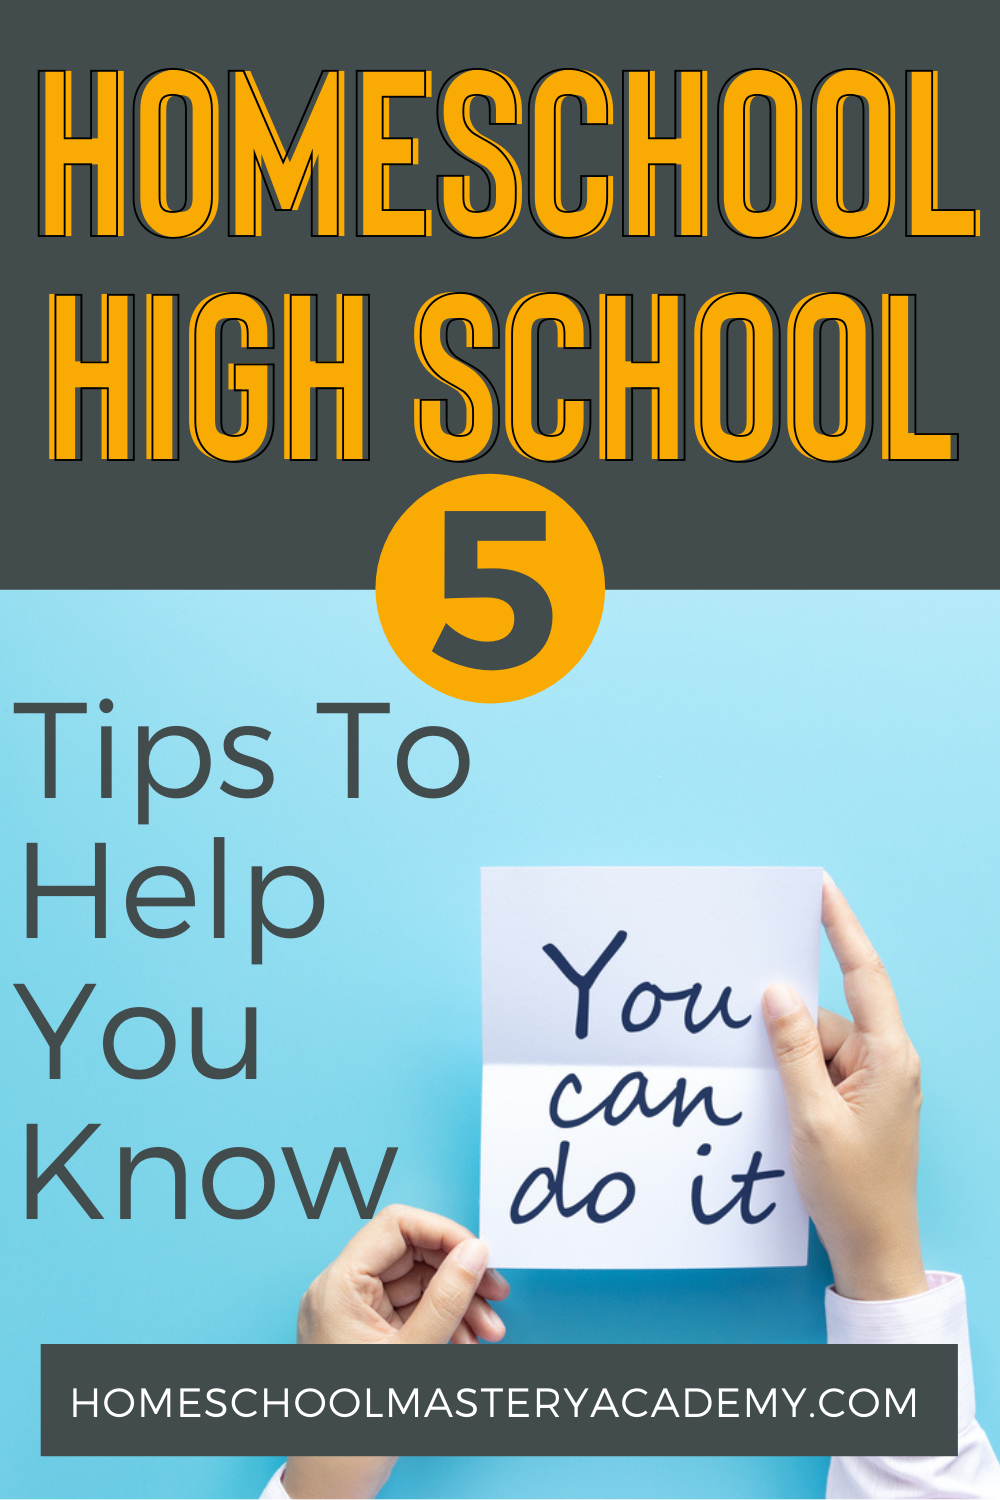 You CAN Homeschool High School! We know you can. Here we share 5 important tips that will help tremendously too! #homeschool #highschool #homeschoolhighschool #homeschoolteens #homeschoolsupport #homeschooltips #homeschoolencouragement